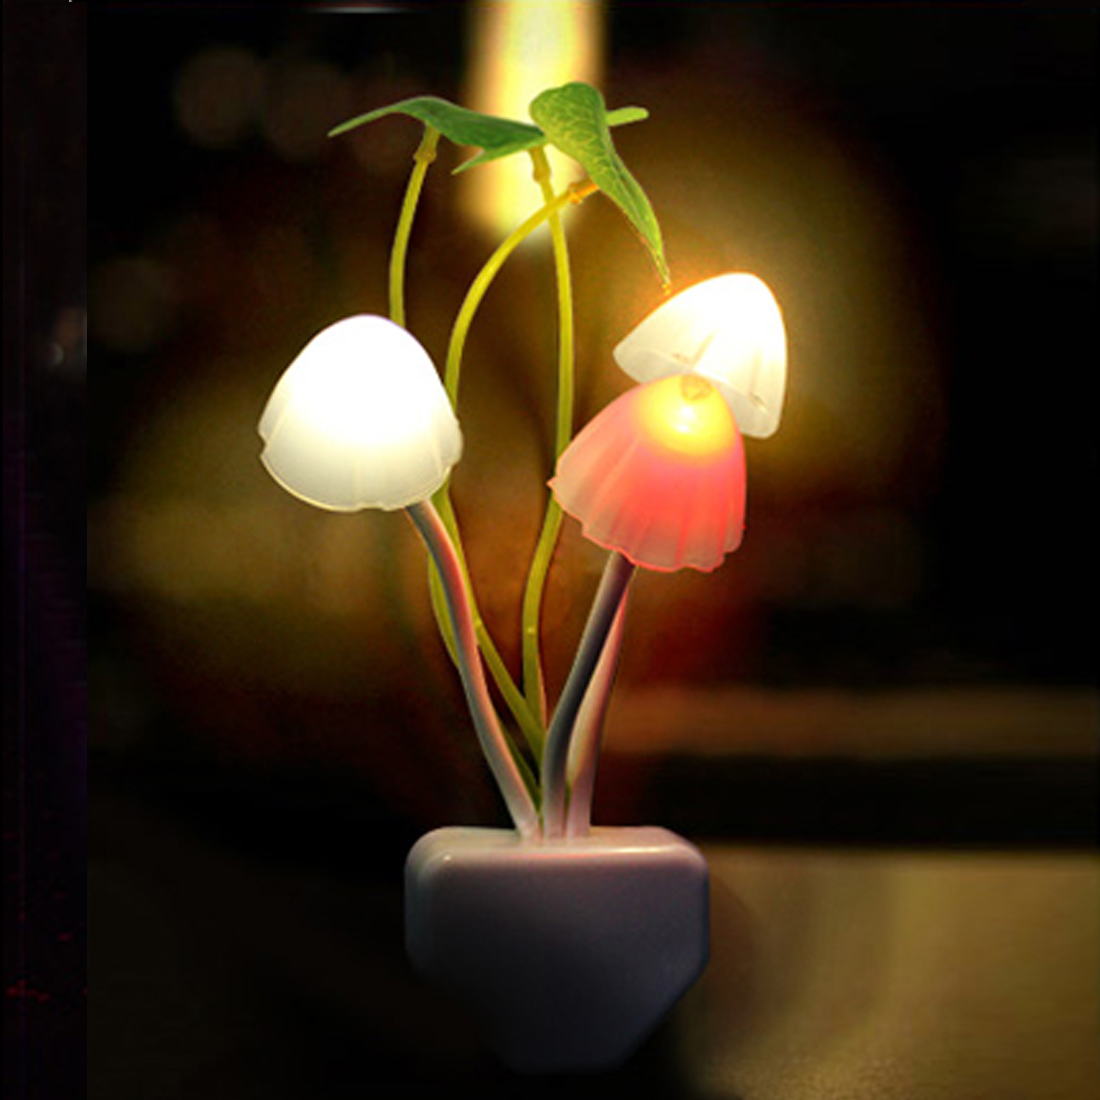 Lovely US & EU Plug Night Light Induction Dream Mushroom Fungus LED Lamp 3 LEDs Mushroom Lamp LED Night Lights